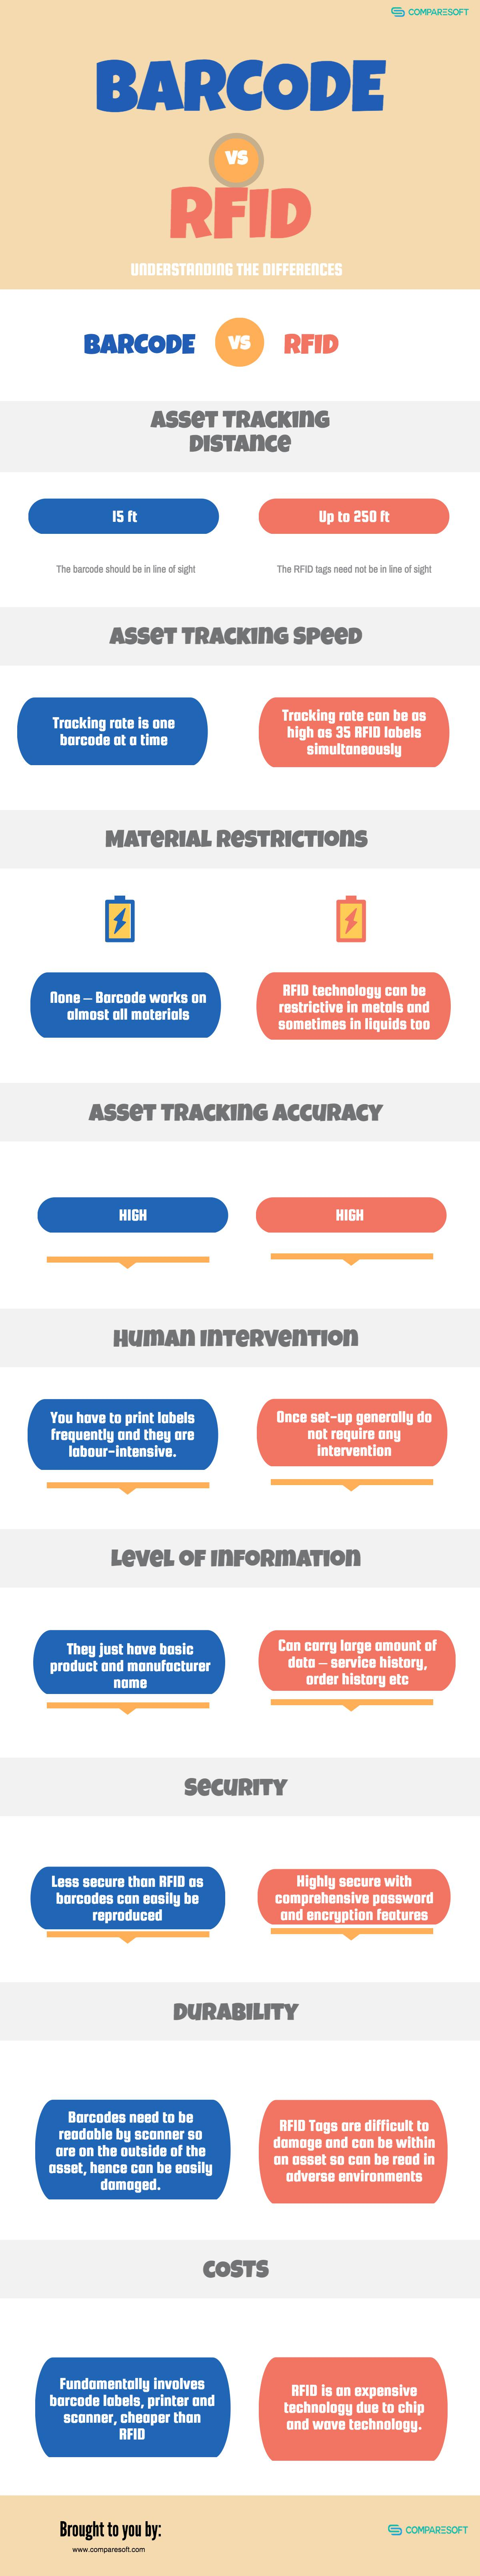 Asset Tracking Technologies; Barcode vs RFID